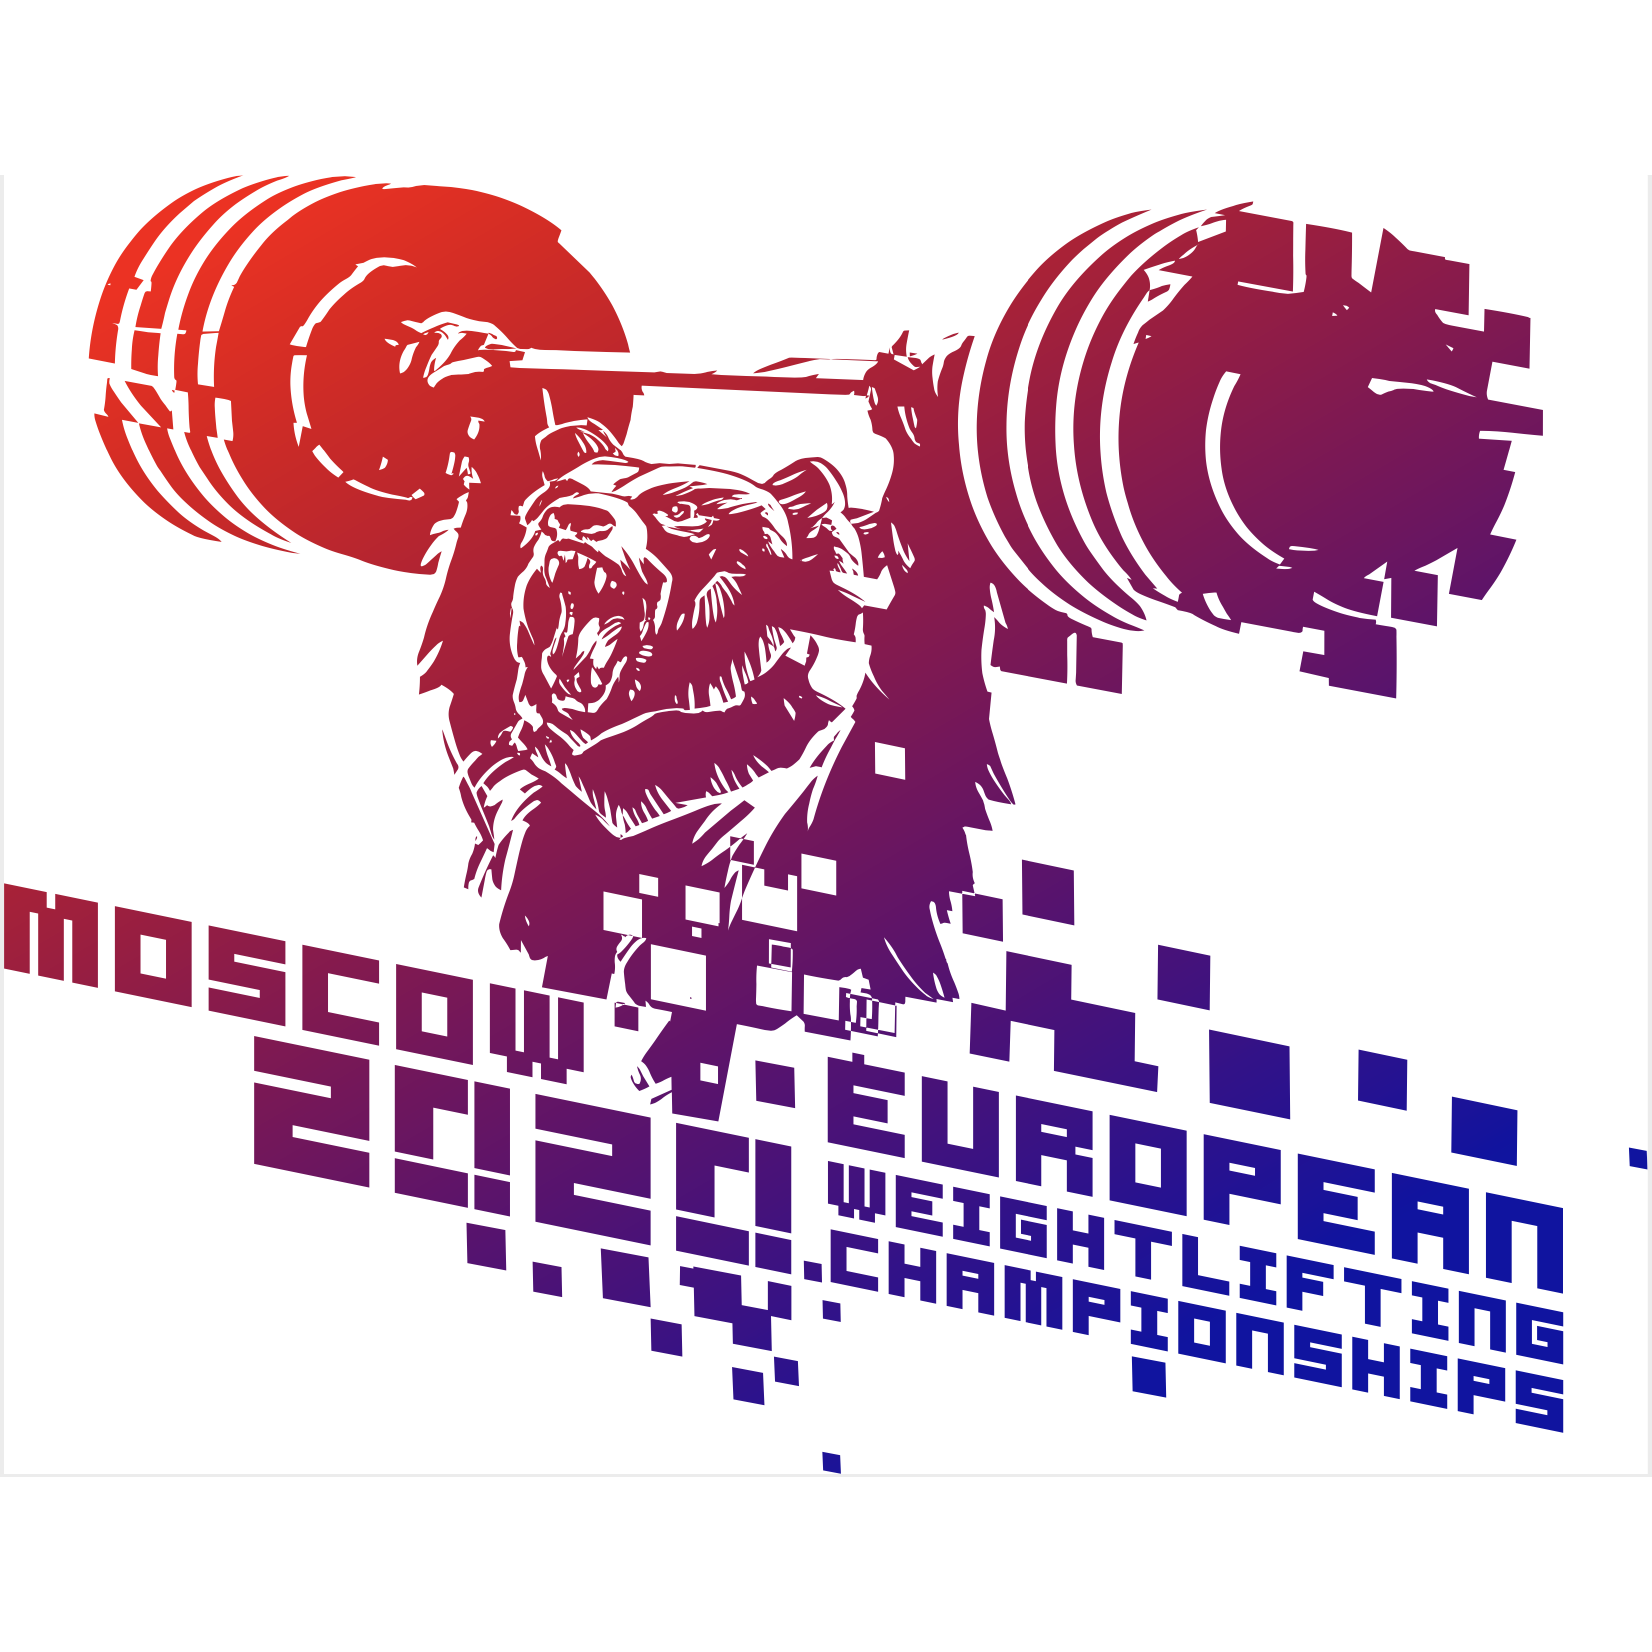 2021 European Weightlifting Championships